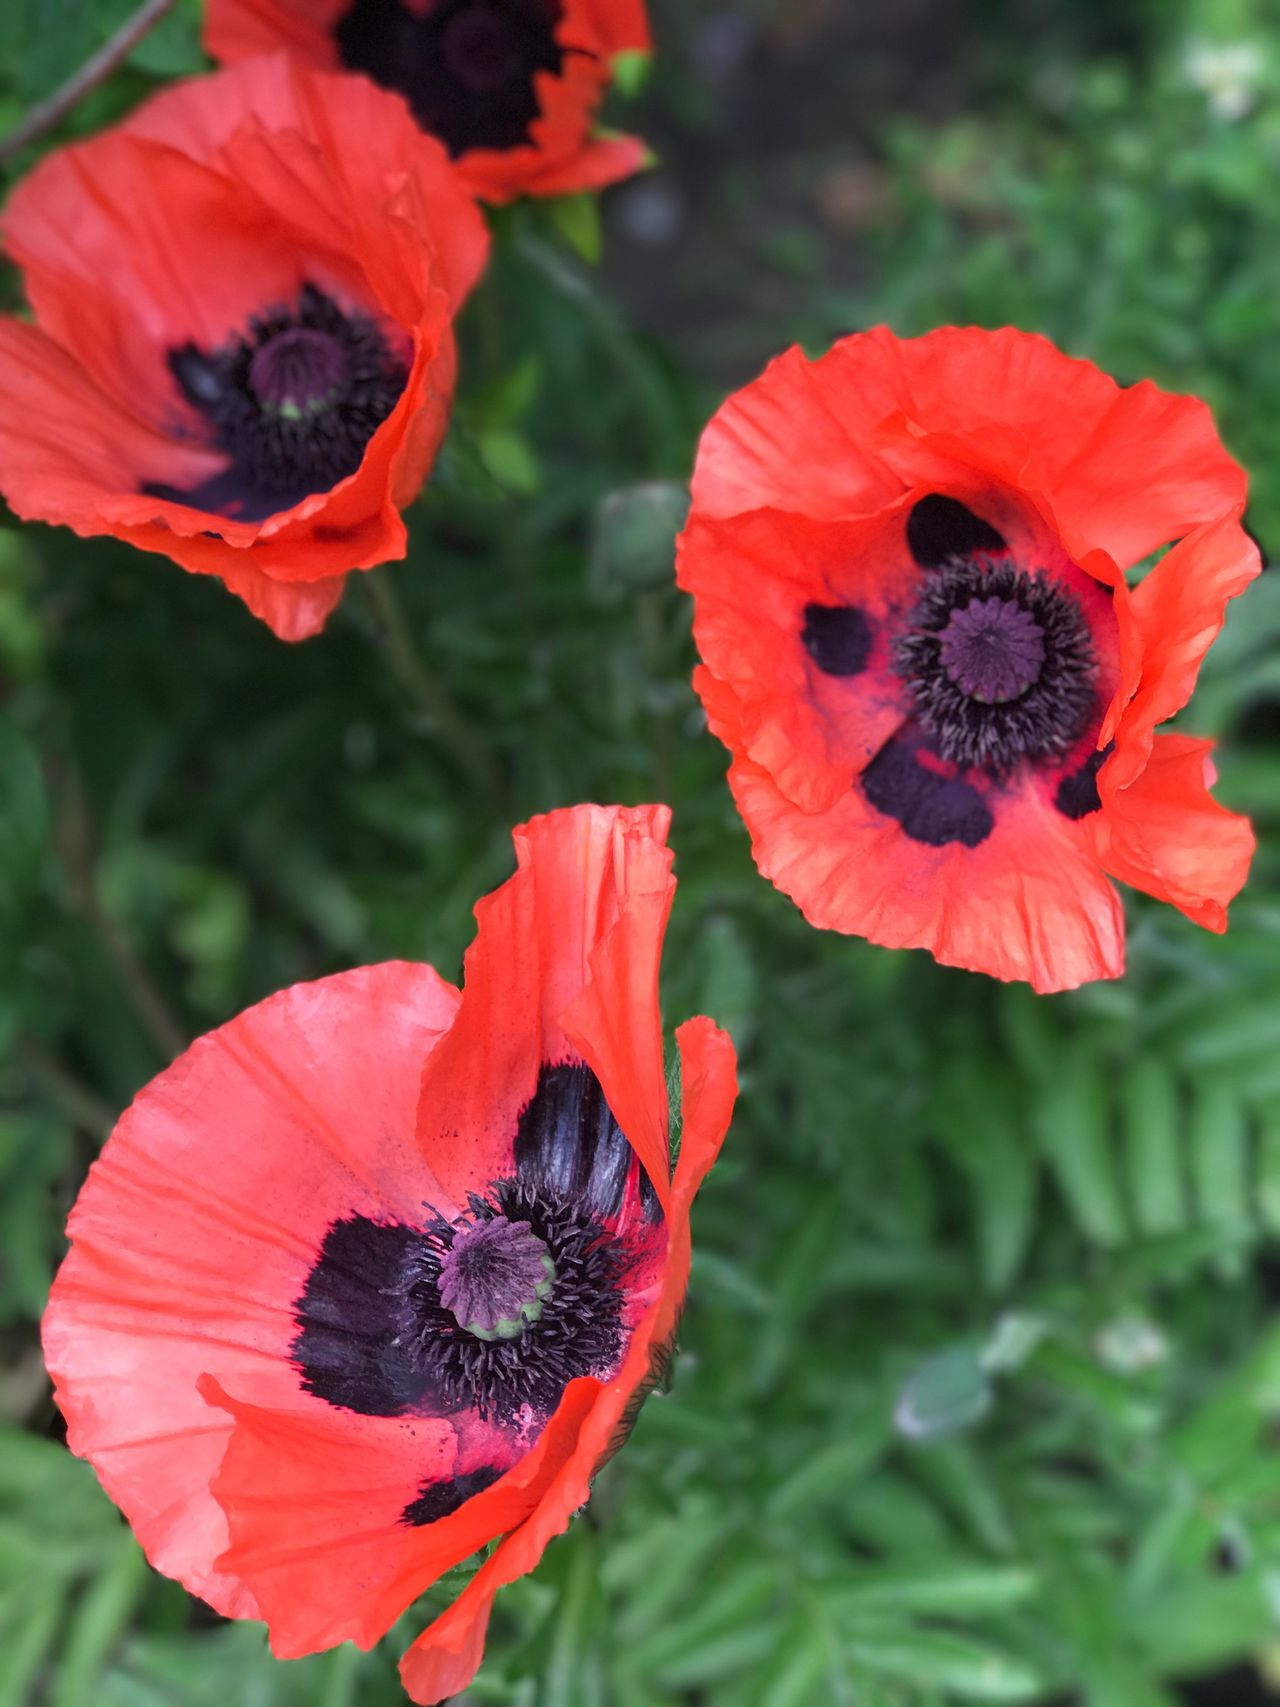 Flower Petal Beauty In Nature Plant Outdoors Red Focus On Foreground Poppy Poppy Flowers Poppies